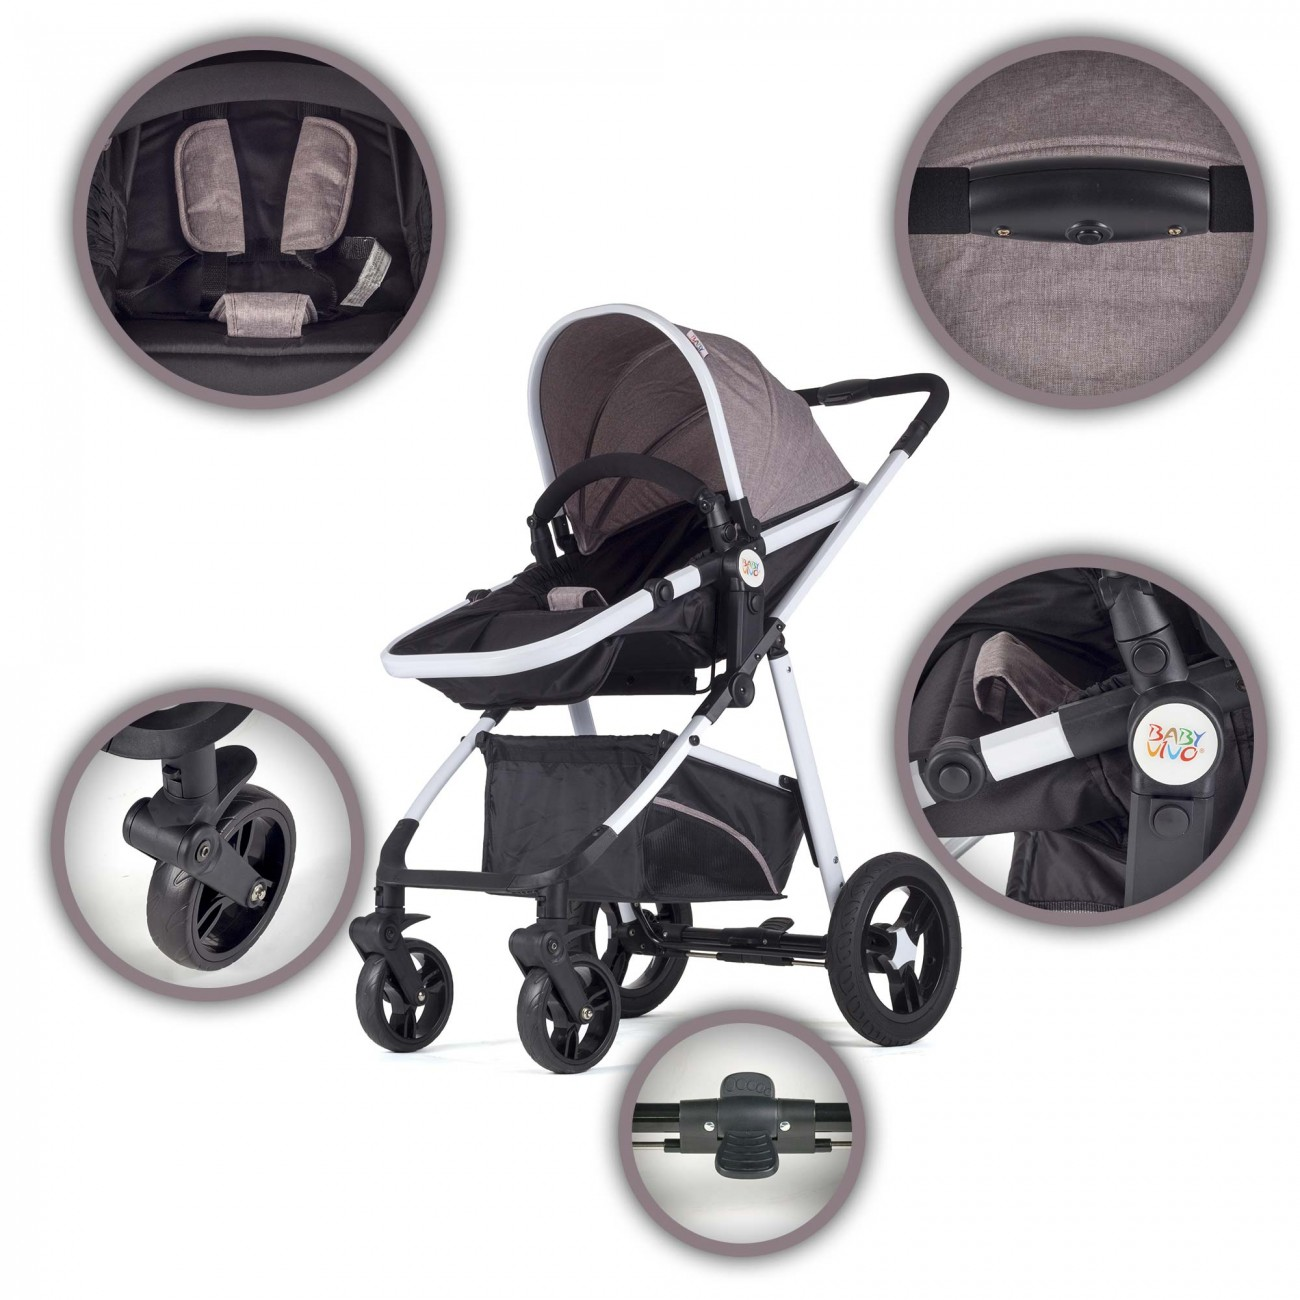 kinderwagen buggy 2in1 baby vivo kombi tragetasche sport. Black Bedroom Furniture Sets. Home Design Ideas